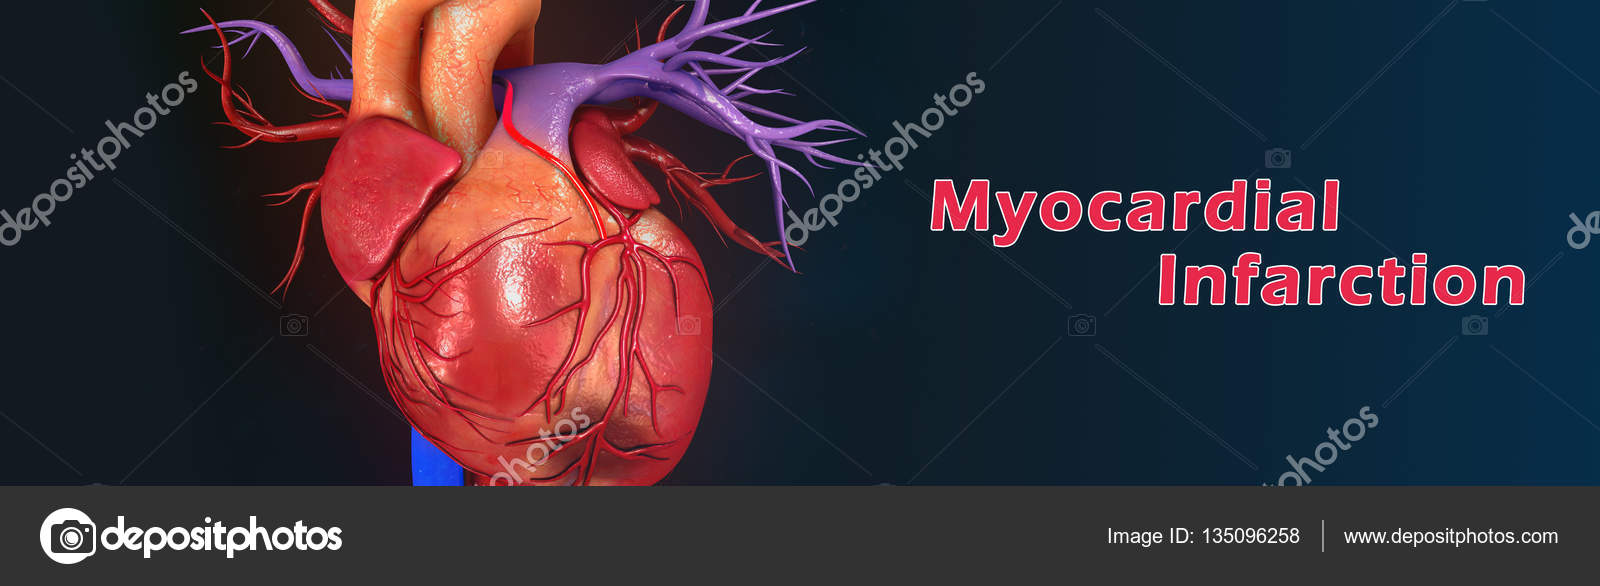 Heart Myocardial Infarction — Stock Photo © sciencepics #135096258